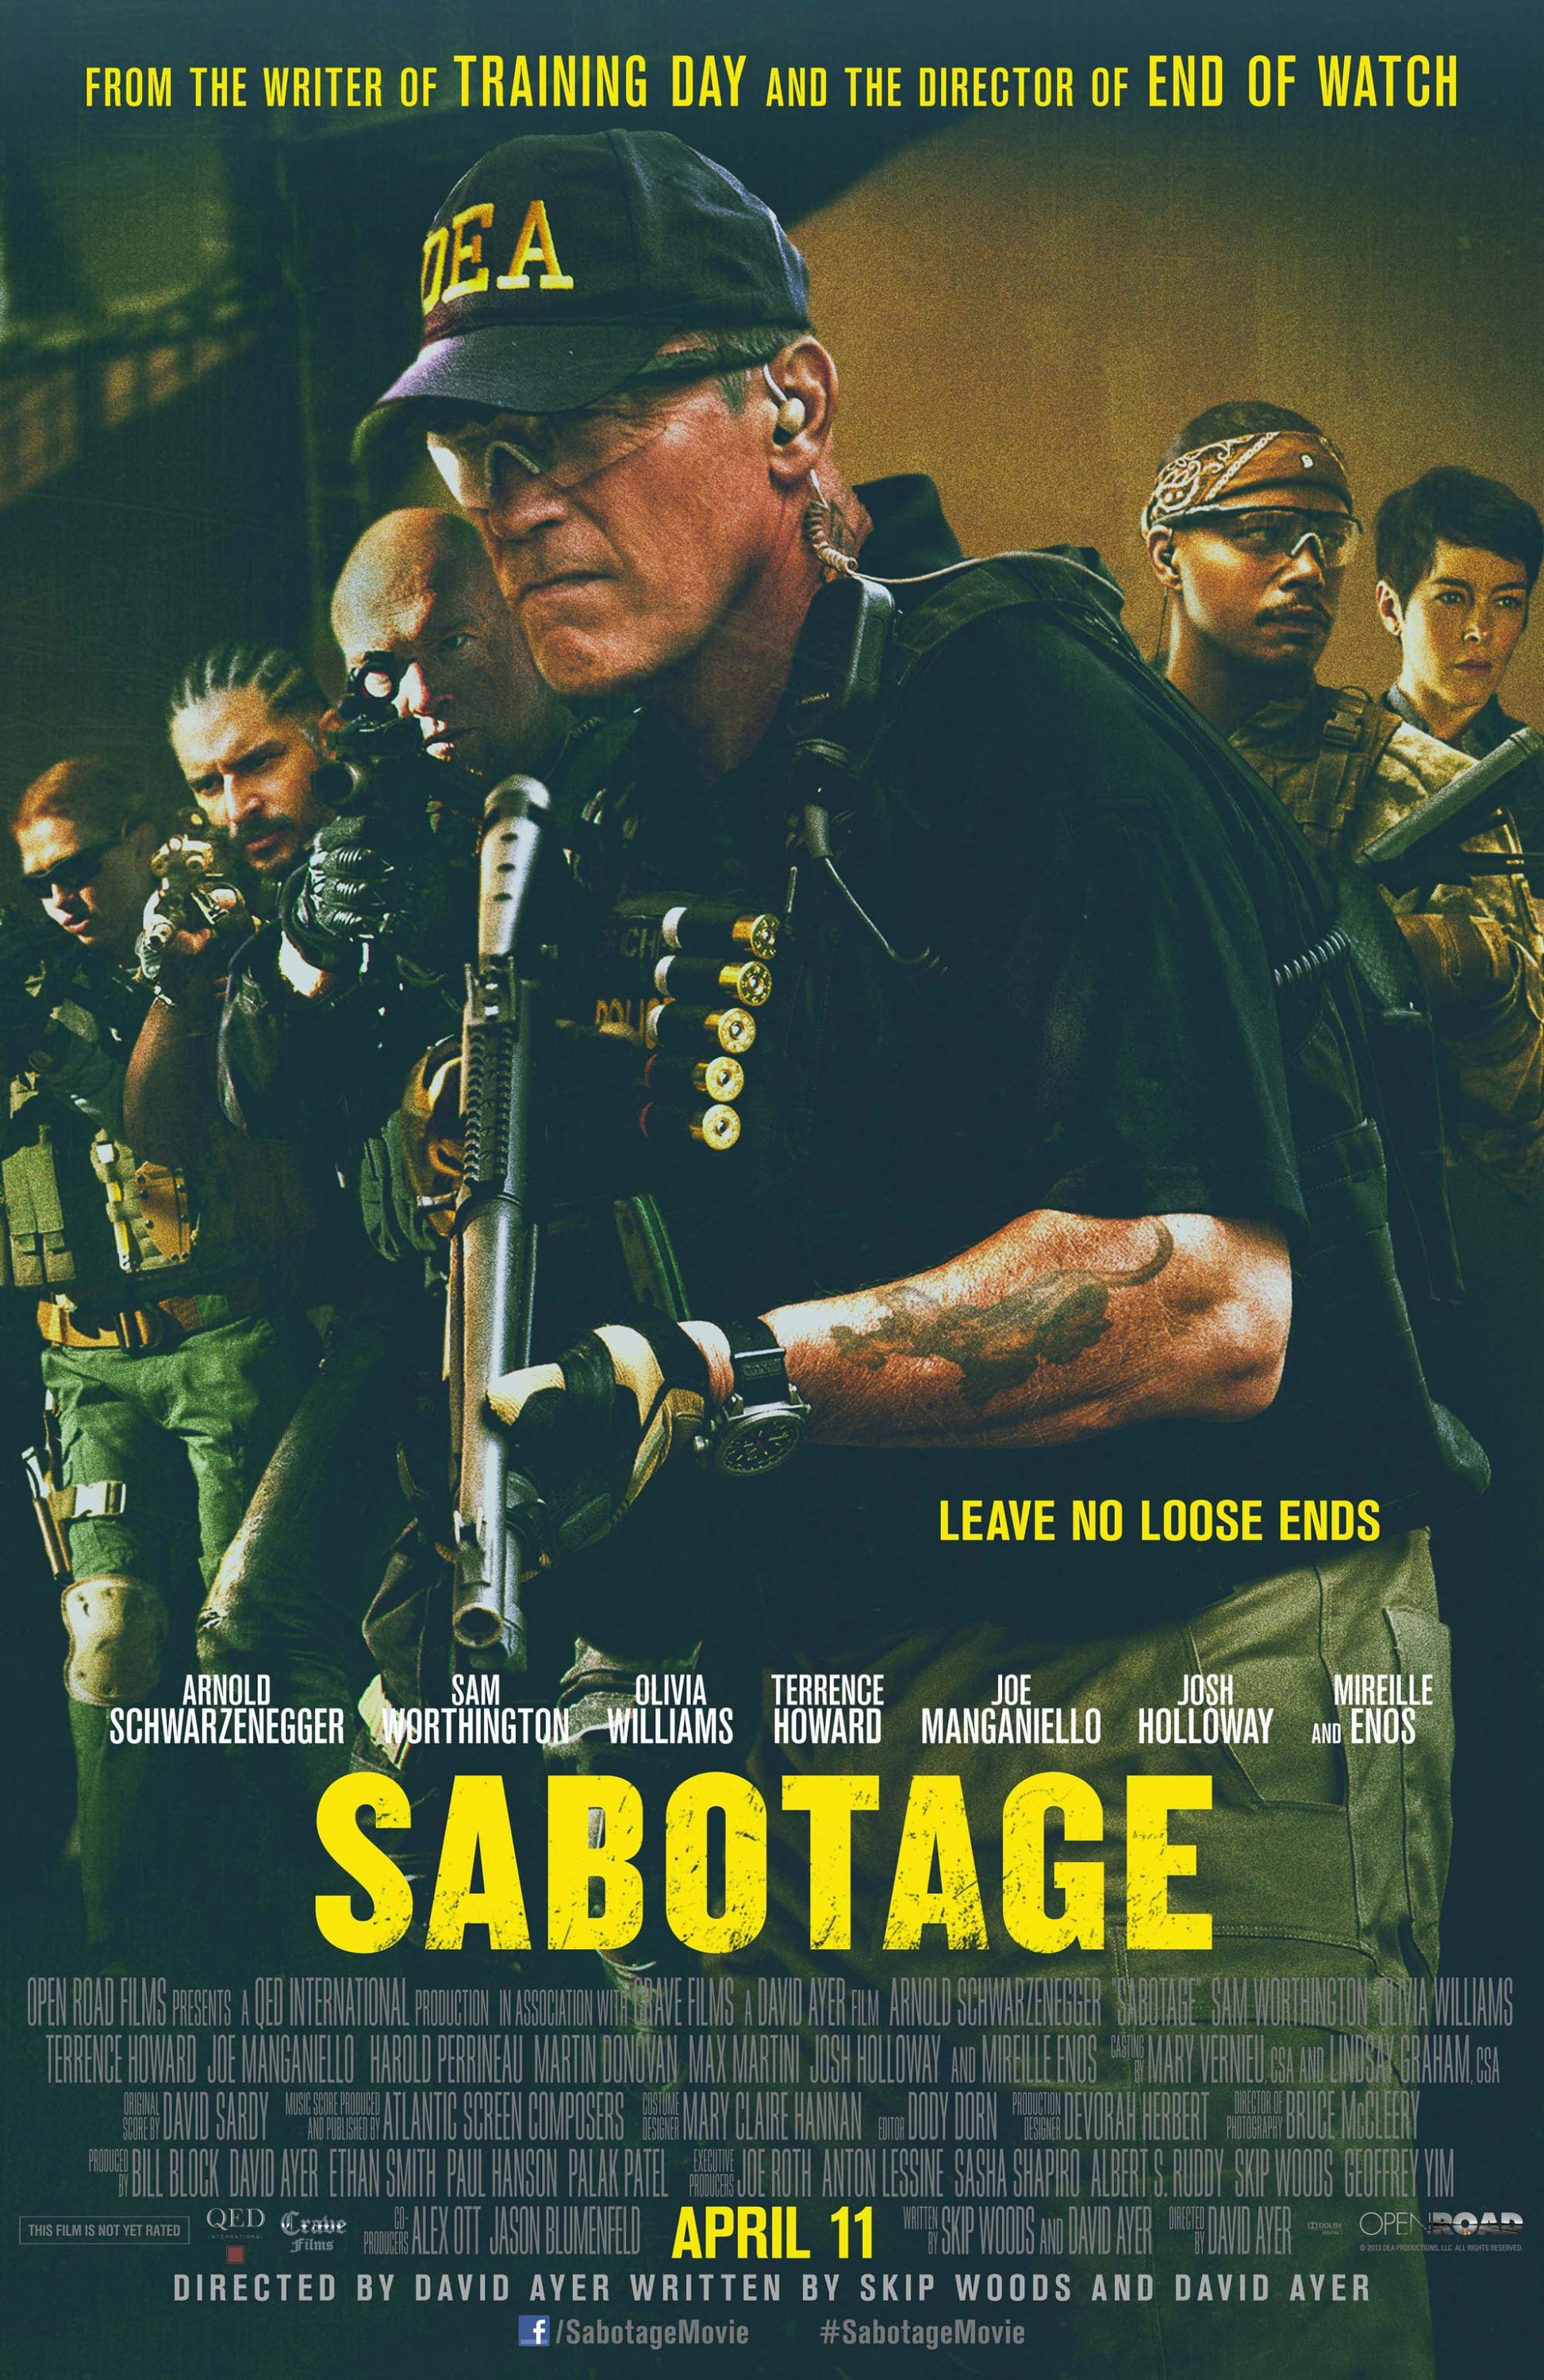 Sabotage-Official Poster Banner PROMO POSTER XXLG-20DEZEMBRO2013